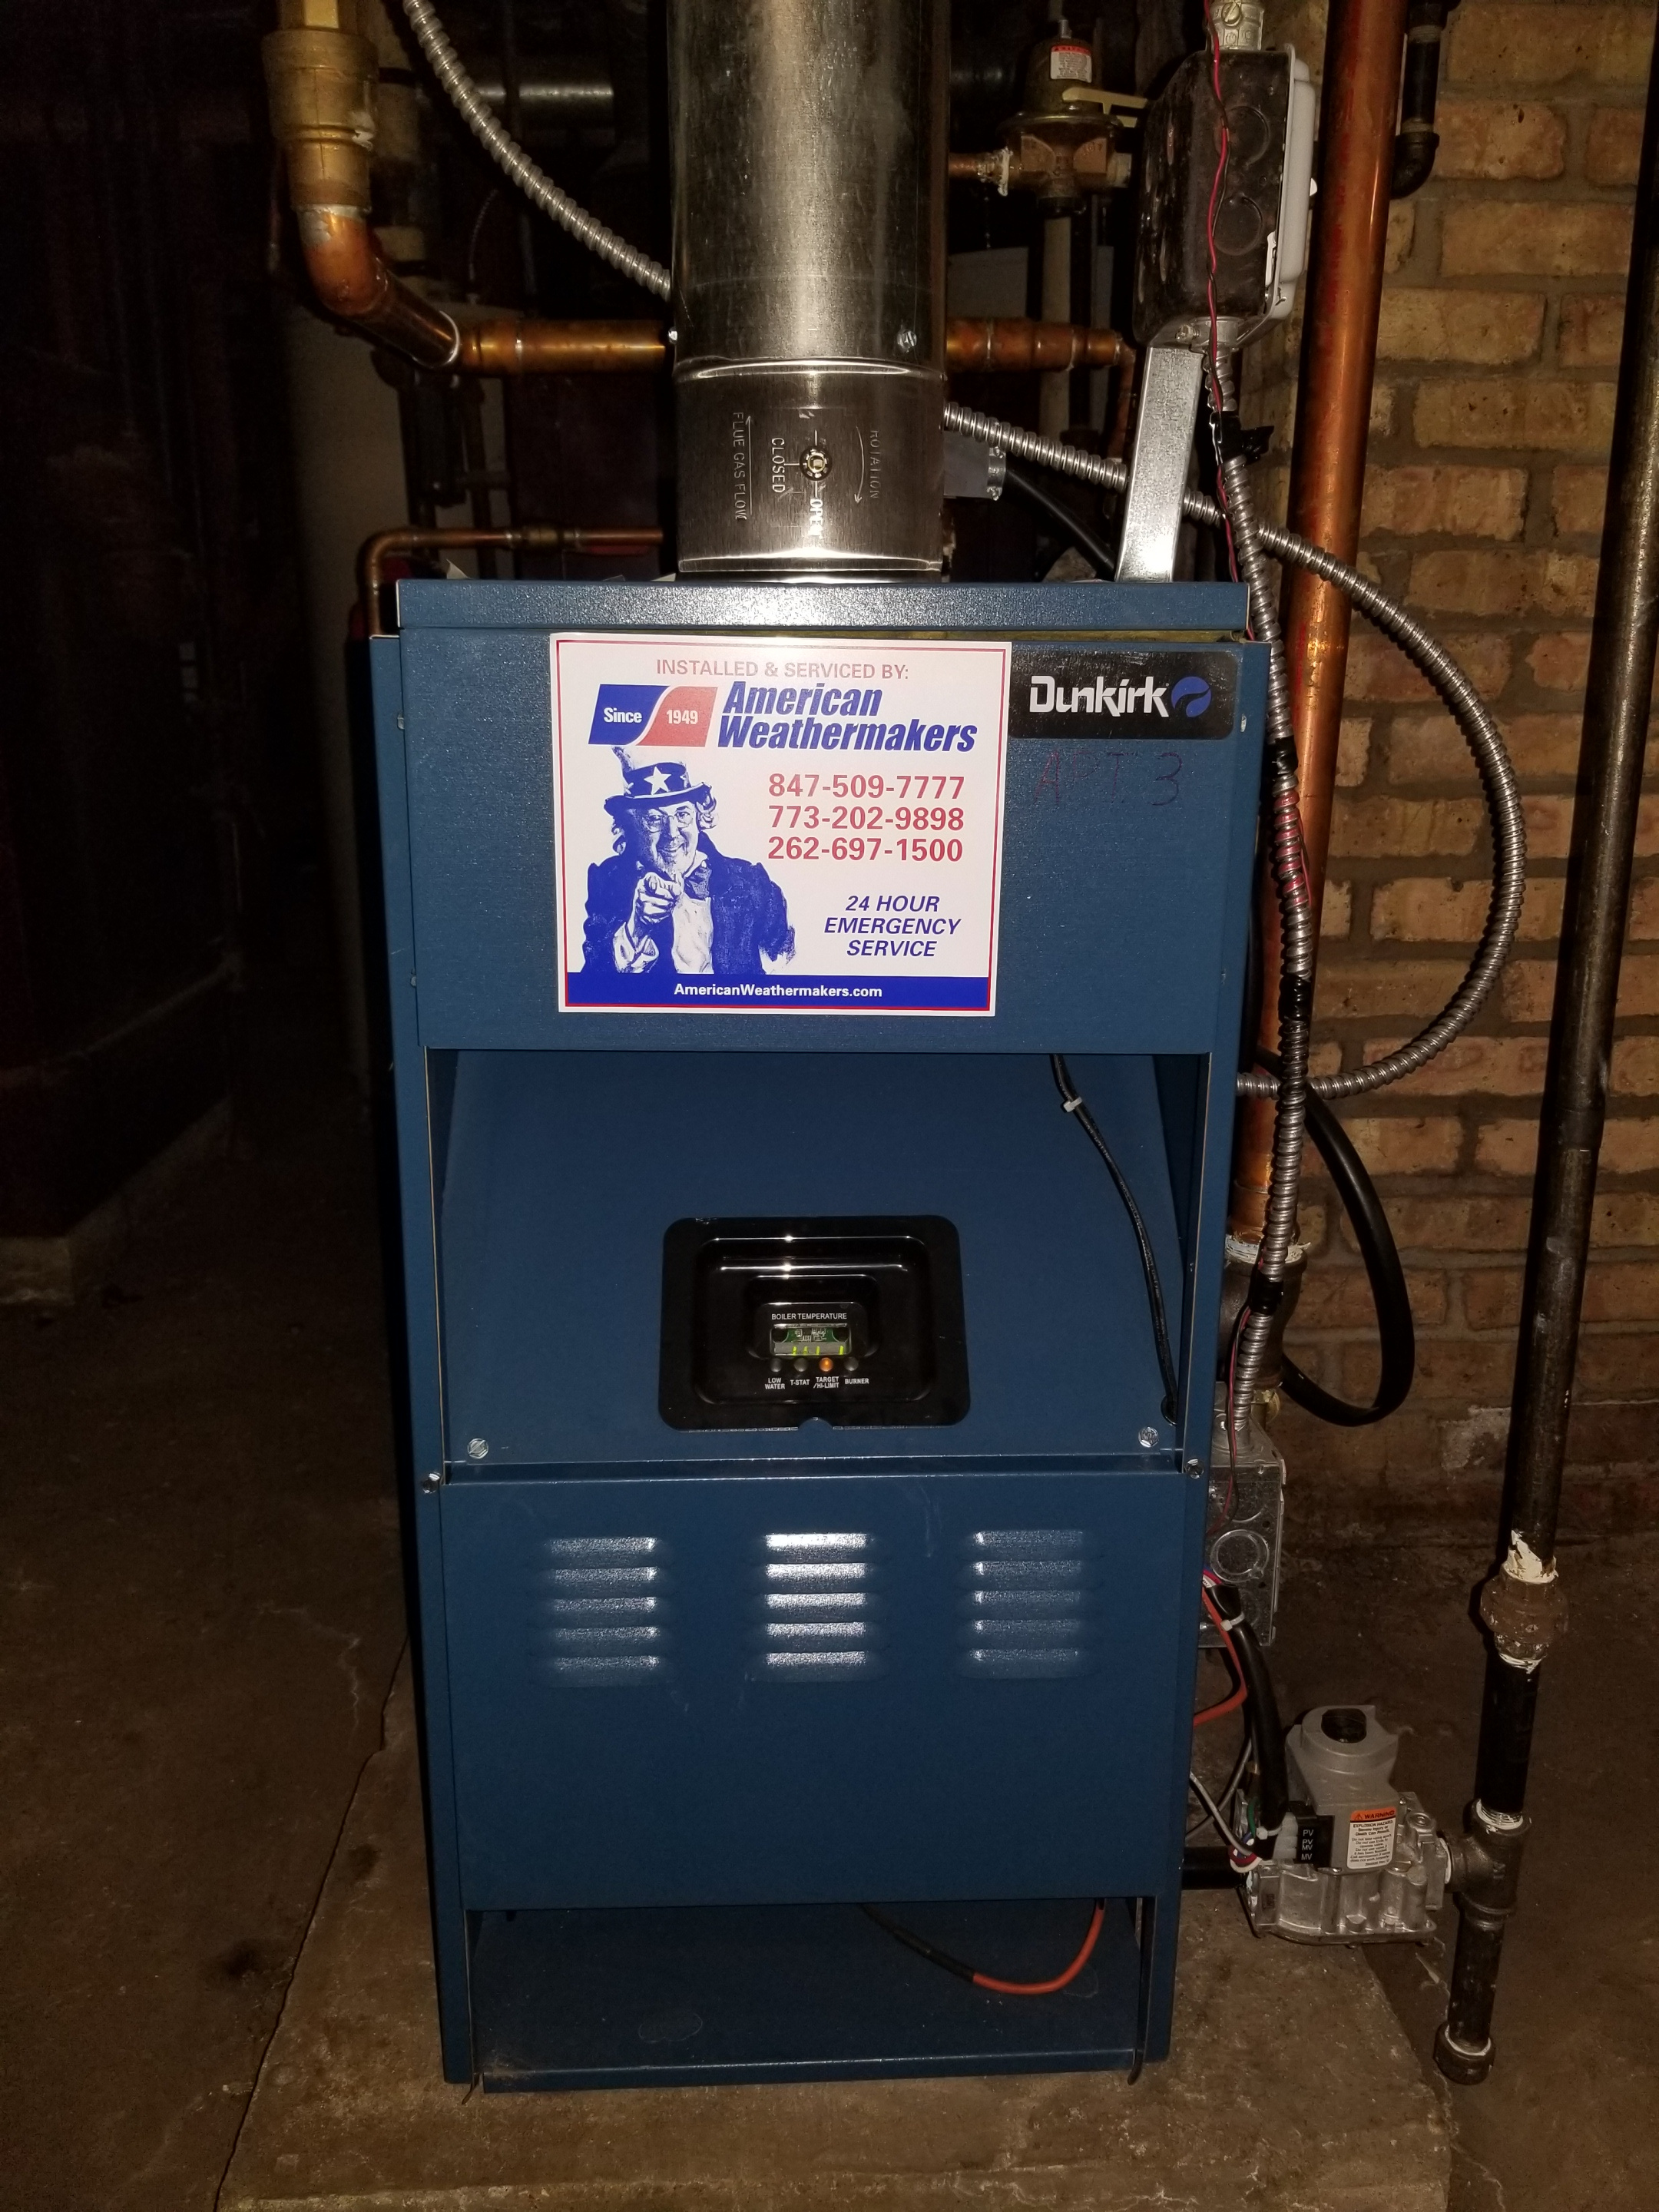 Repaired the Dunkirk qfurnace and made adjustments to improve the overall efficiency and life expectancy of the equipment